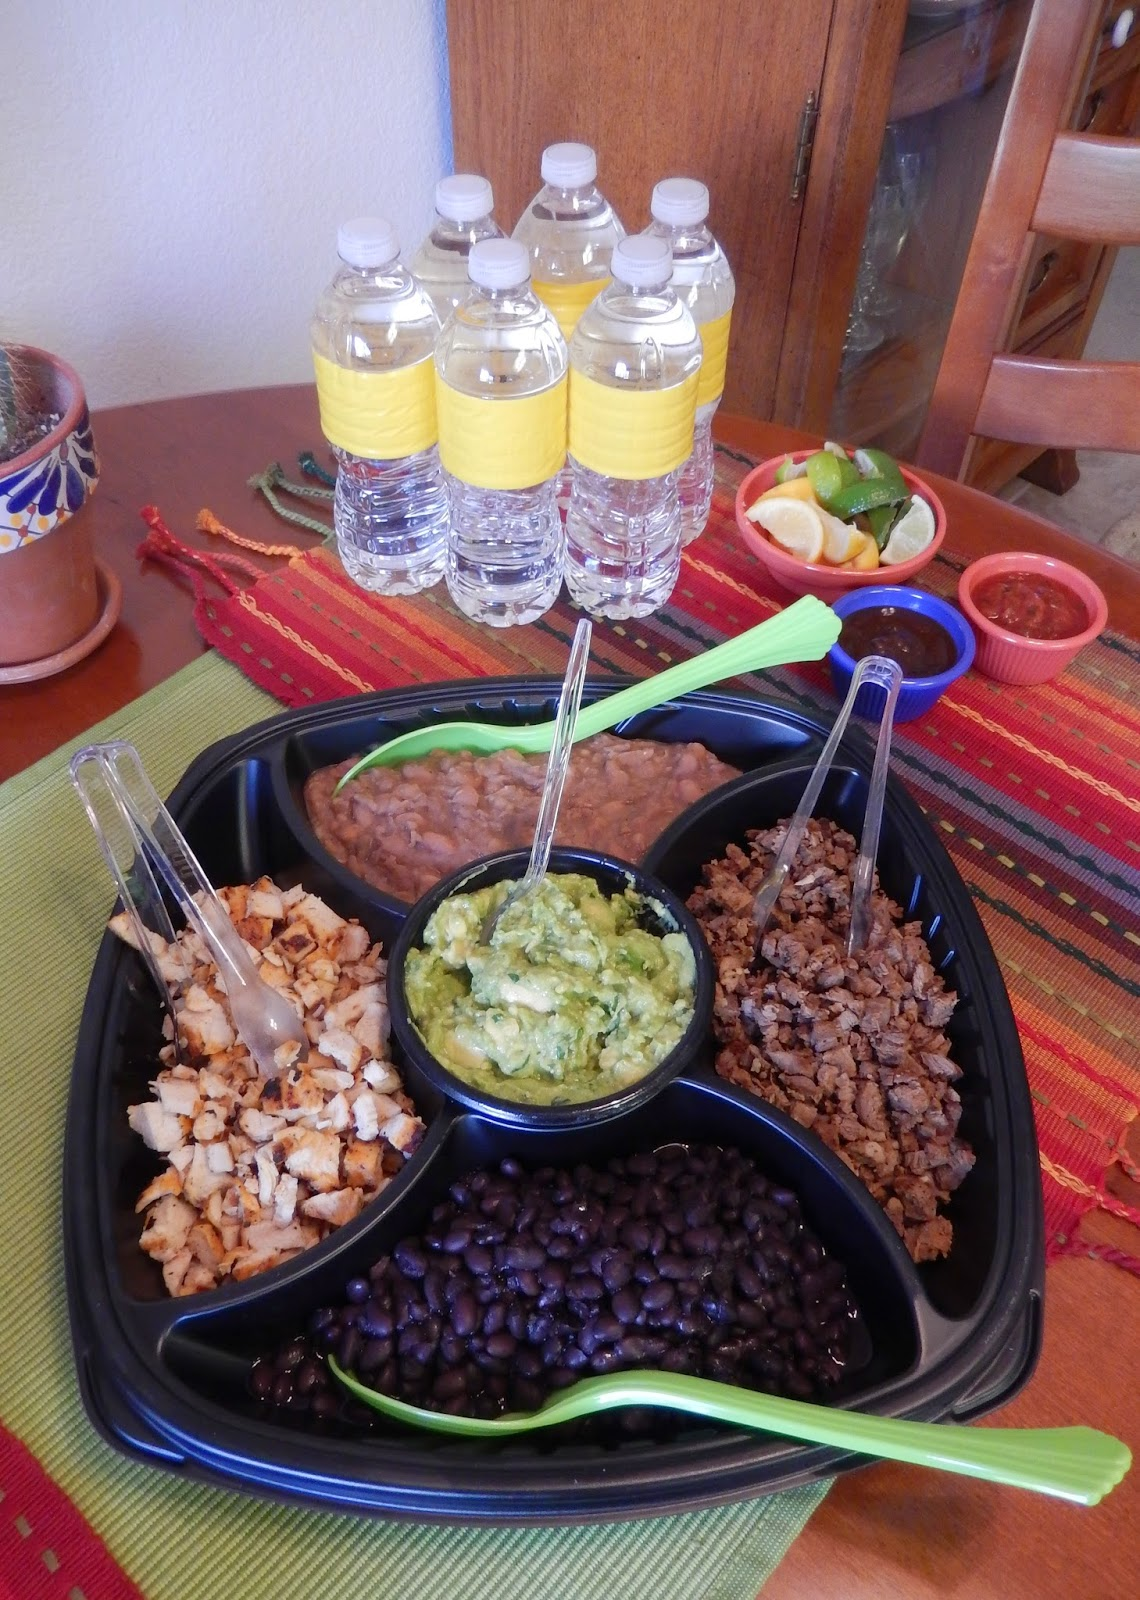 Mexican%2BFiesta%2BMeeting%2BLuncheon%2BBrunch%2BCinco%2Bde%2BMayo%2BRubios%2BEggface%2B3 Weight Loss Recipes Healthy Meetings (or Parties) Made Easy